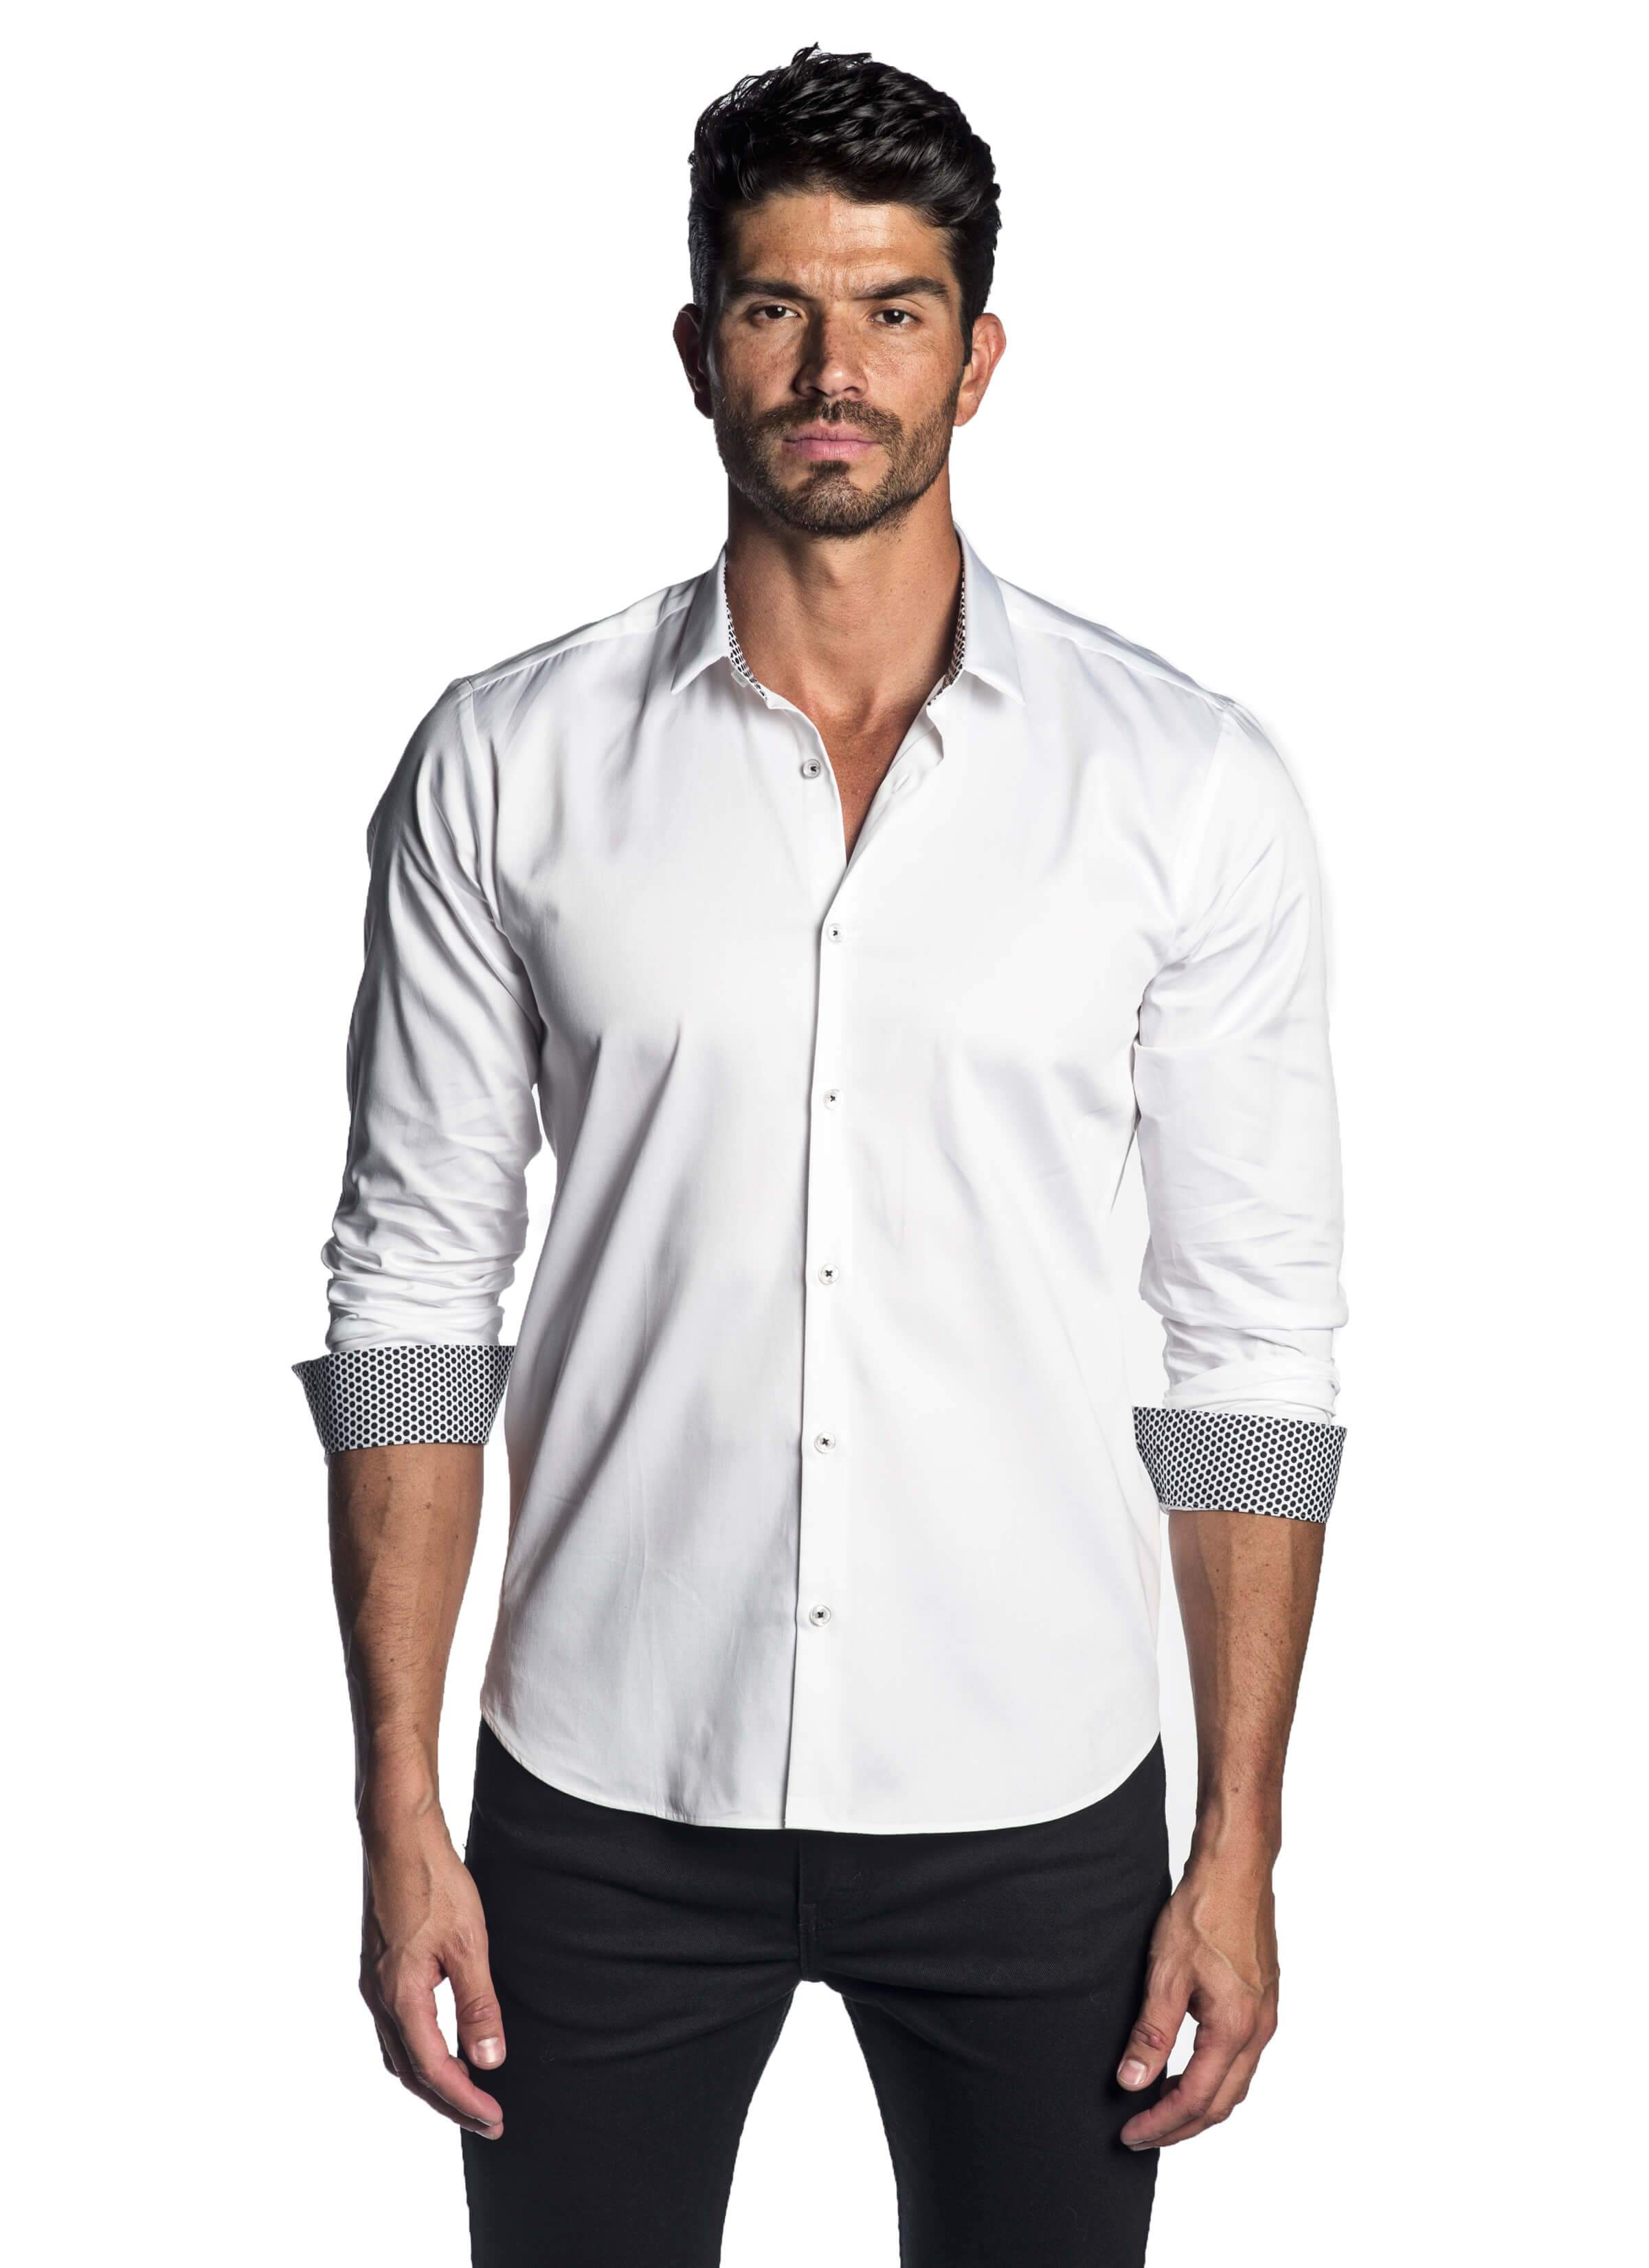 White Solid Shirt for Men - front AH-T-7058 - Jared Lang Collection